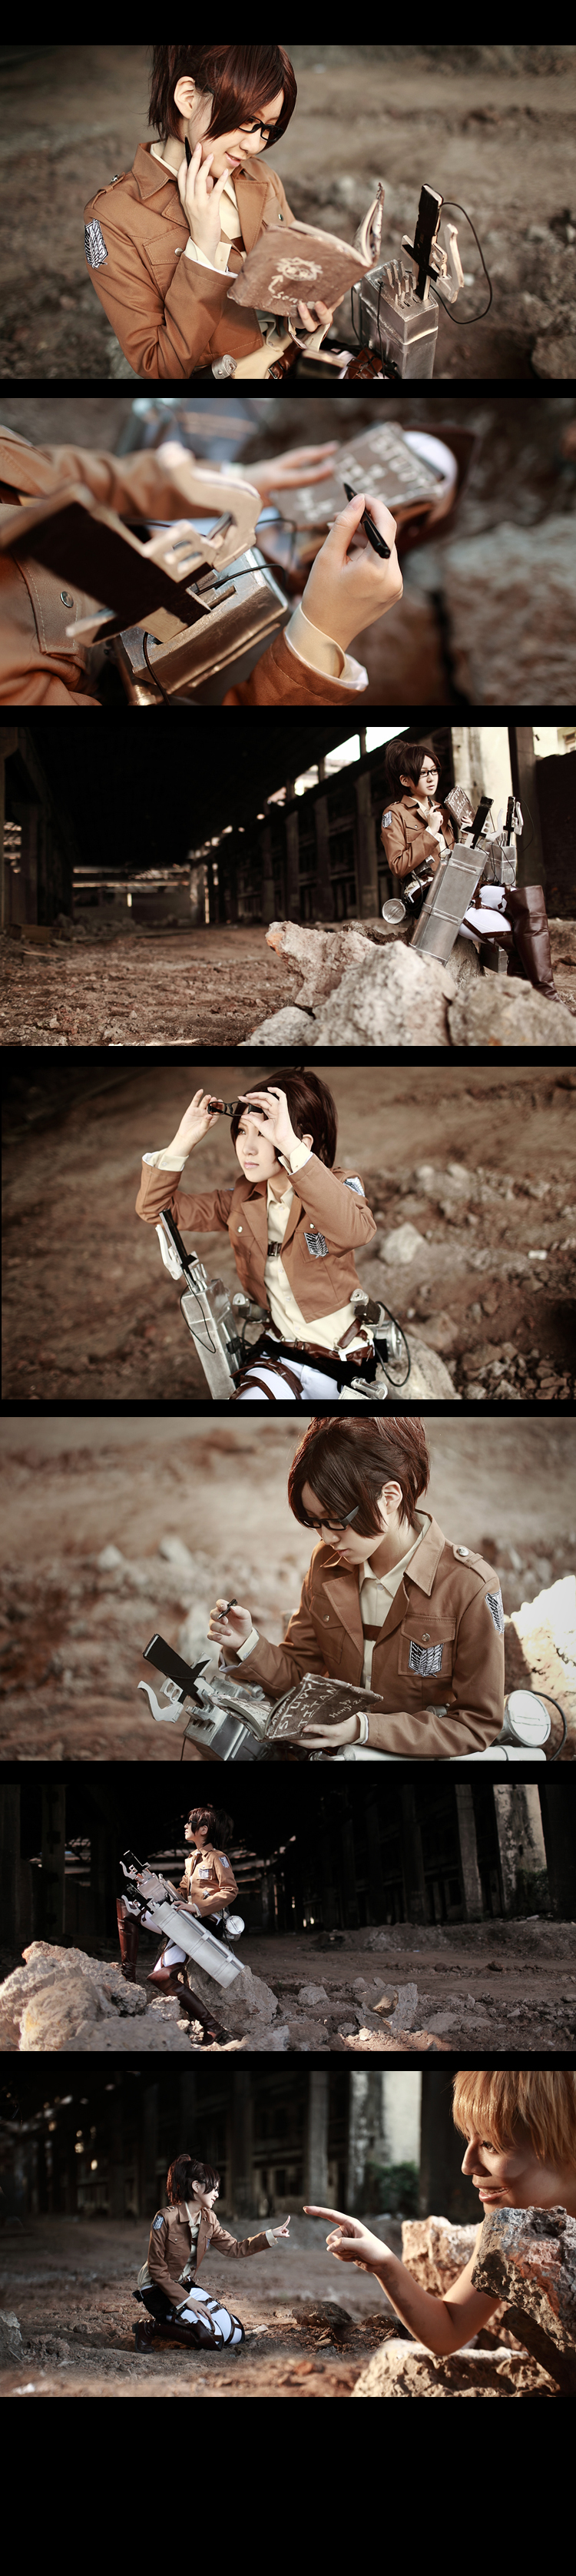 Attack on Titan Hanji Zoe4 by 35ryo